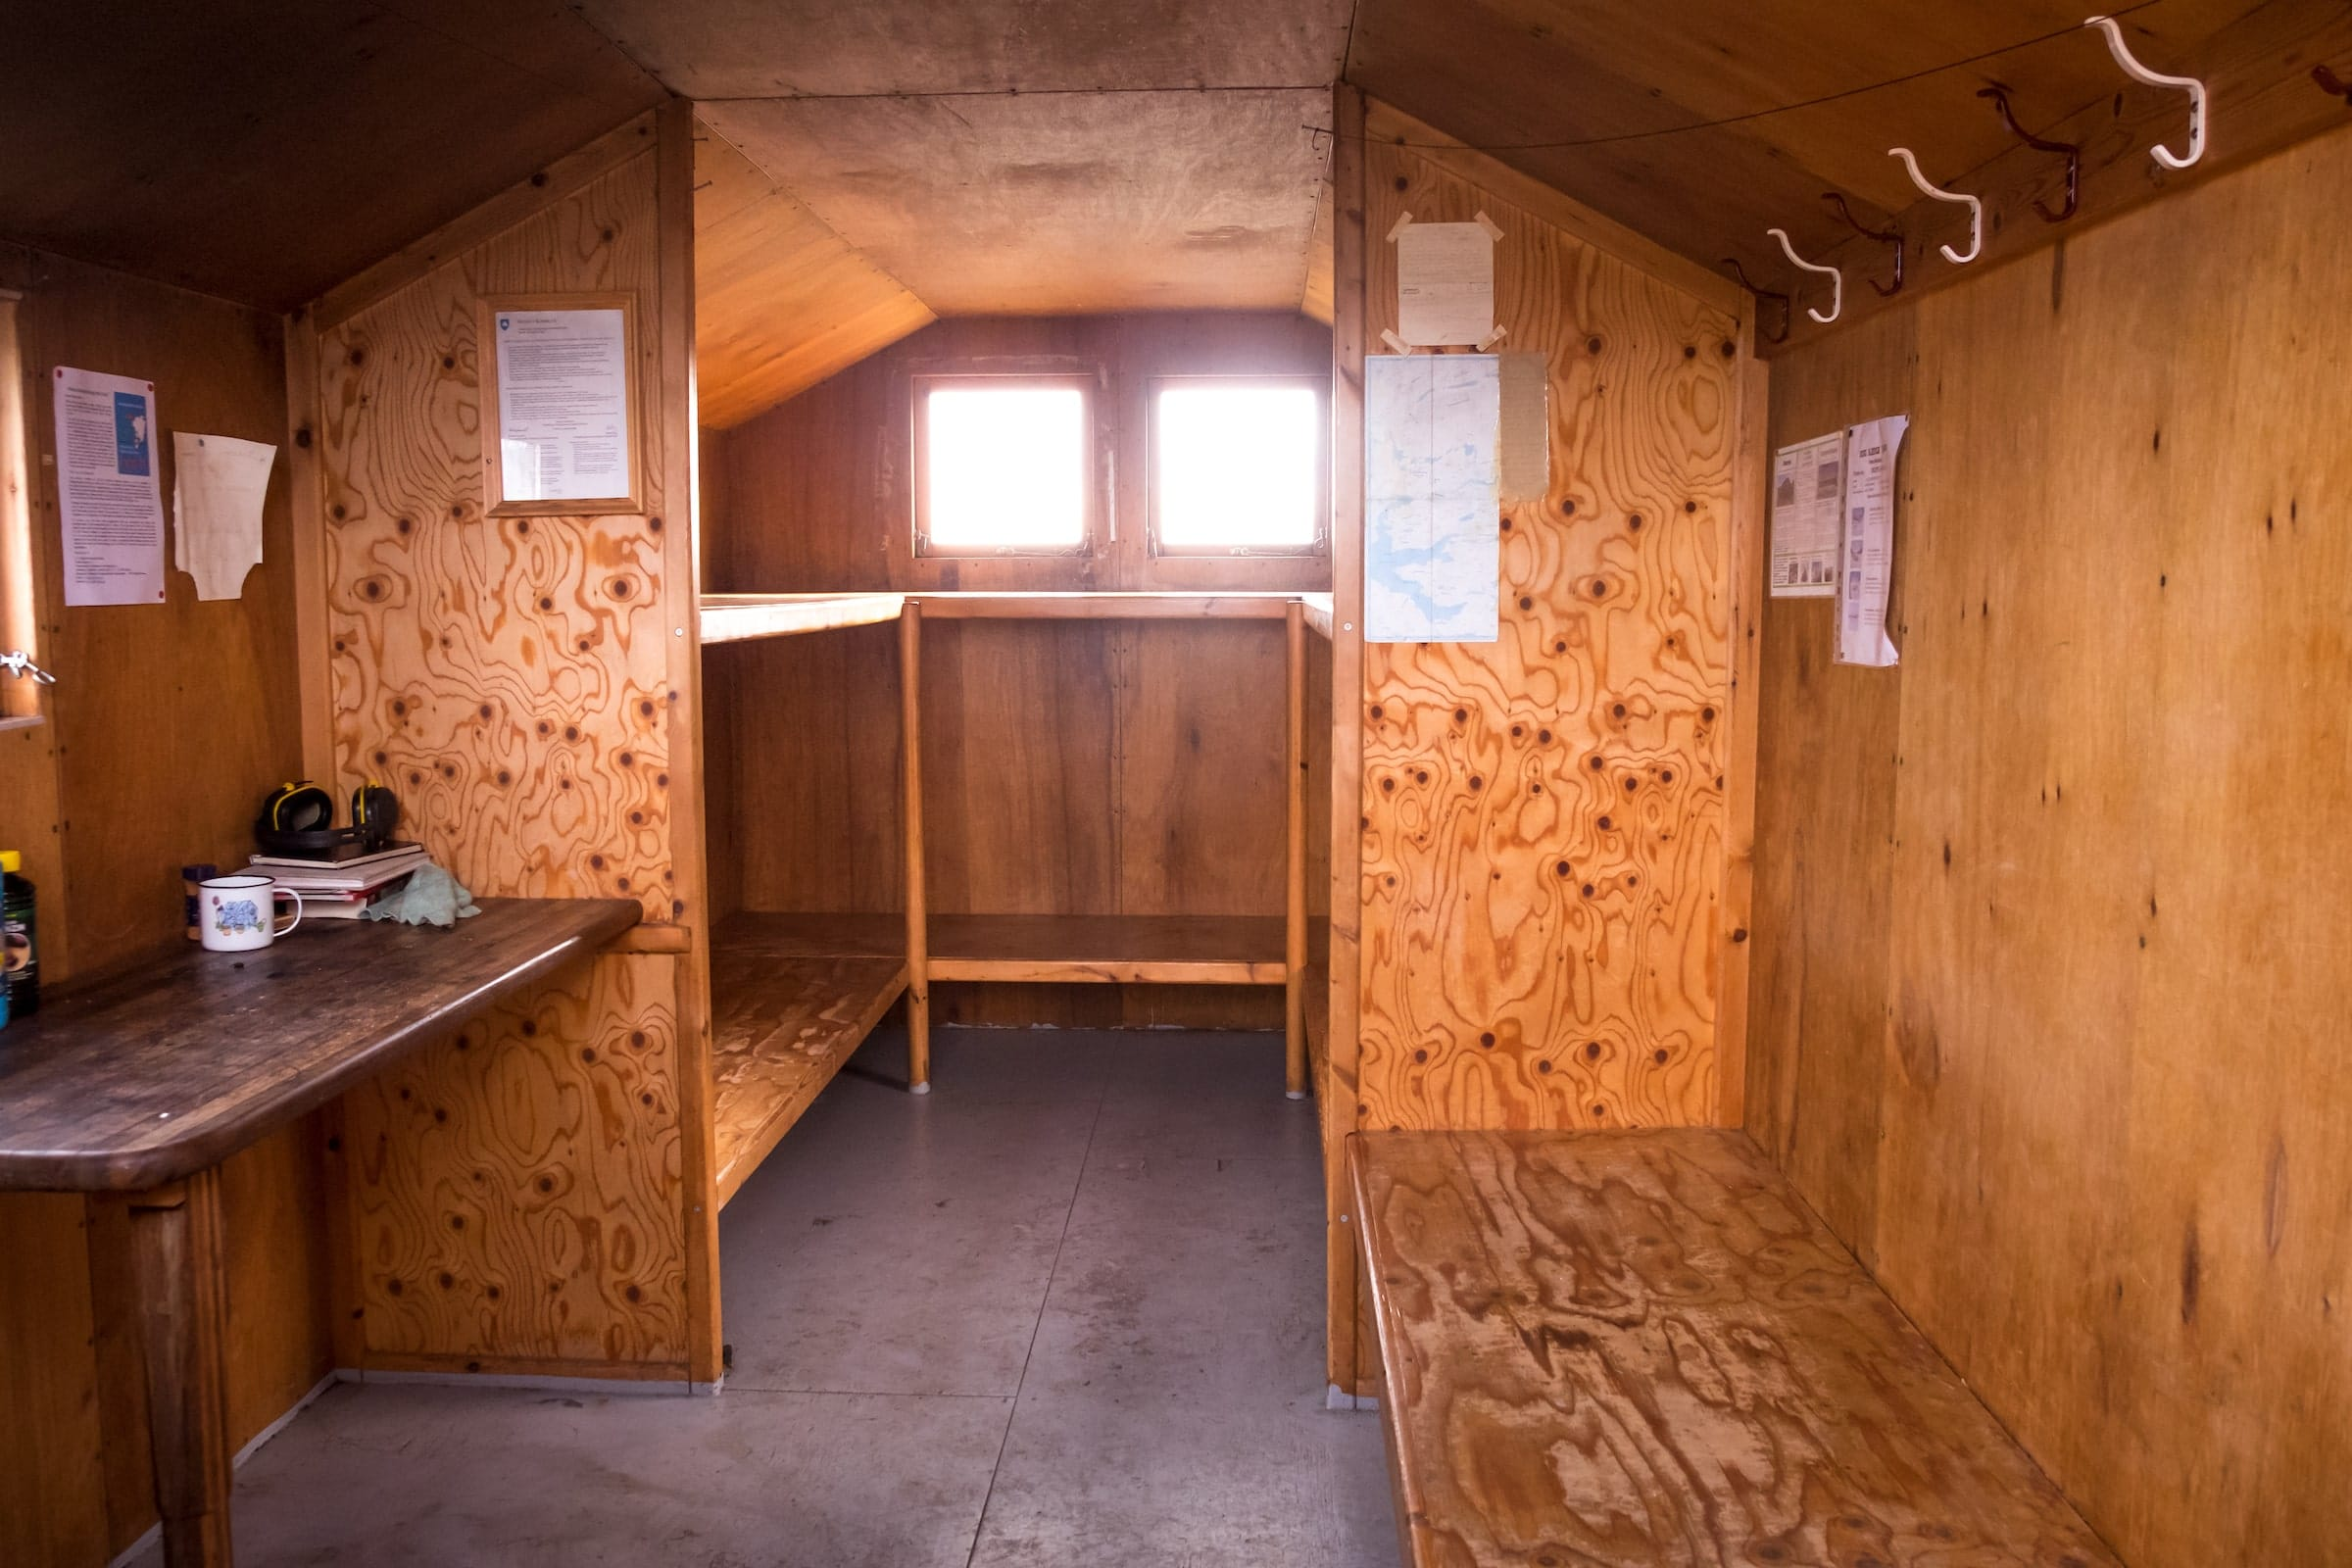 Interior of Ikkattooq Hut - Day 3 of Arctic Circle Trail. Photo by Lisa Germany